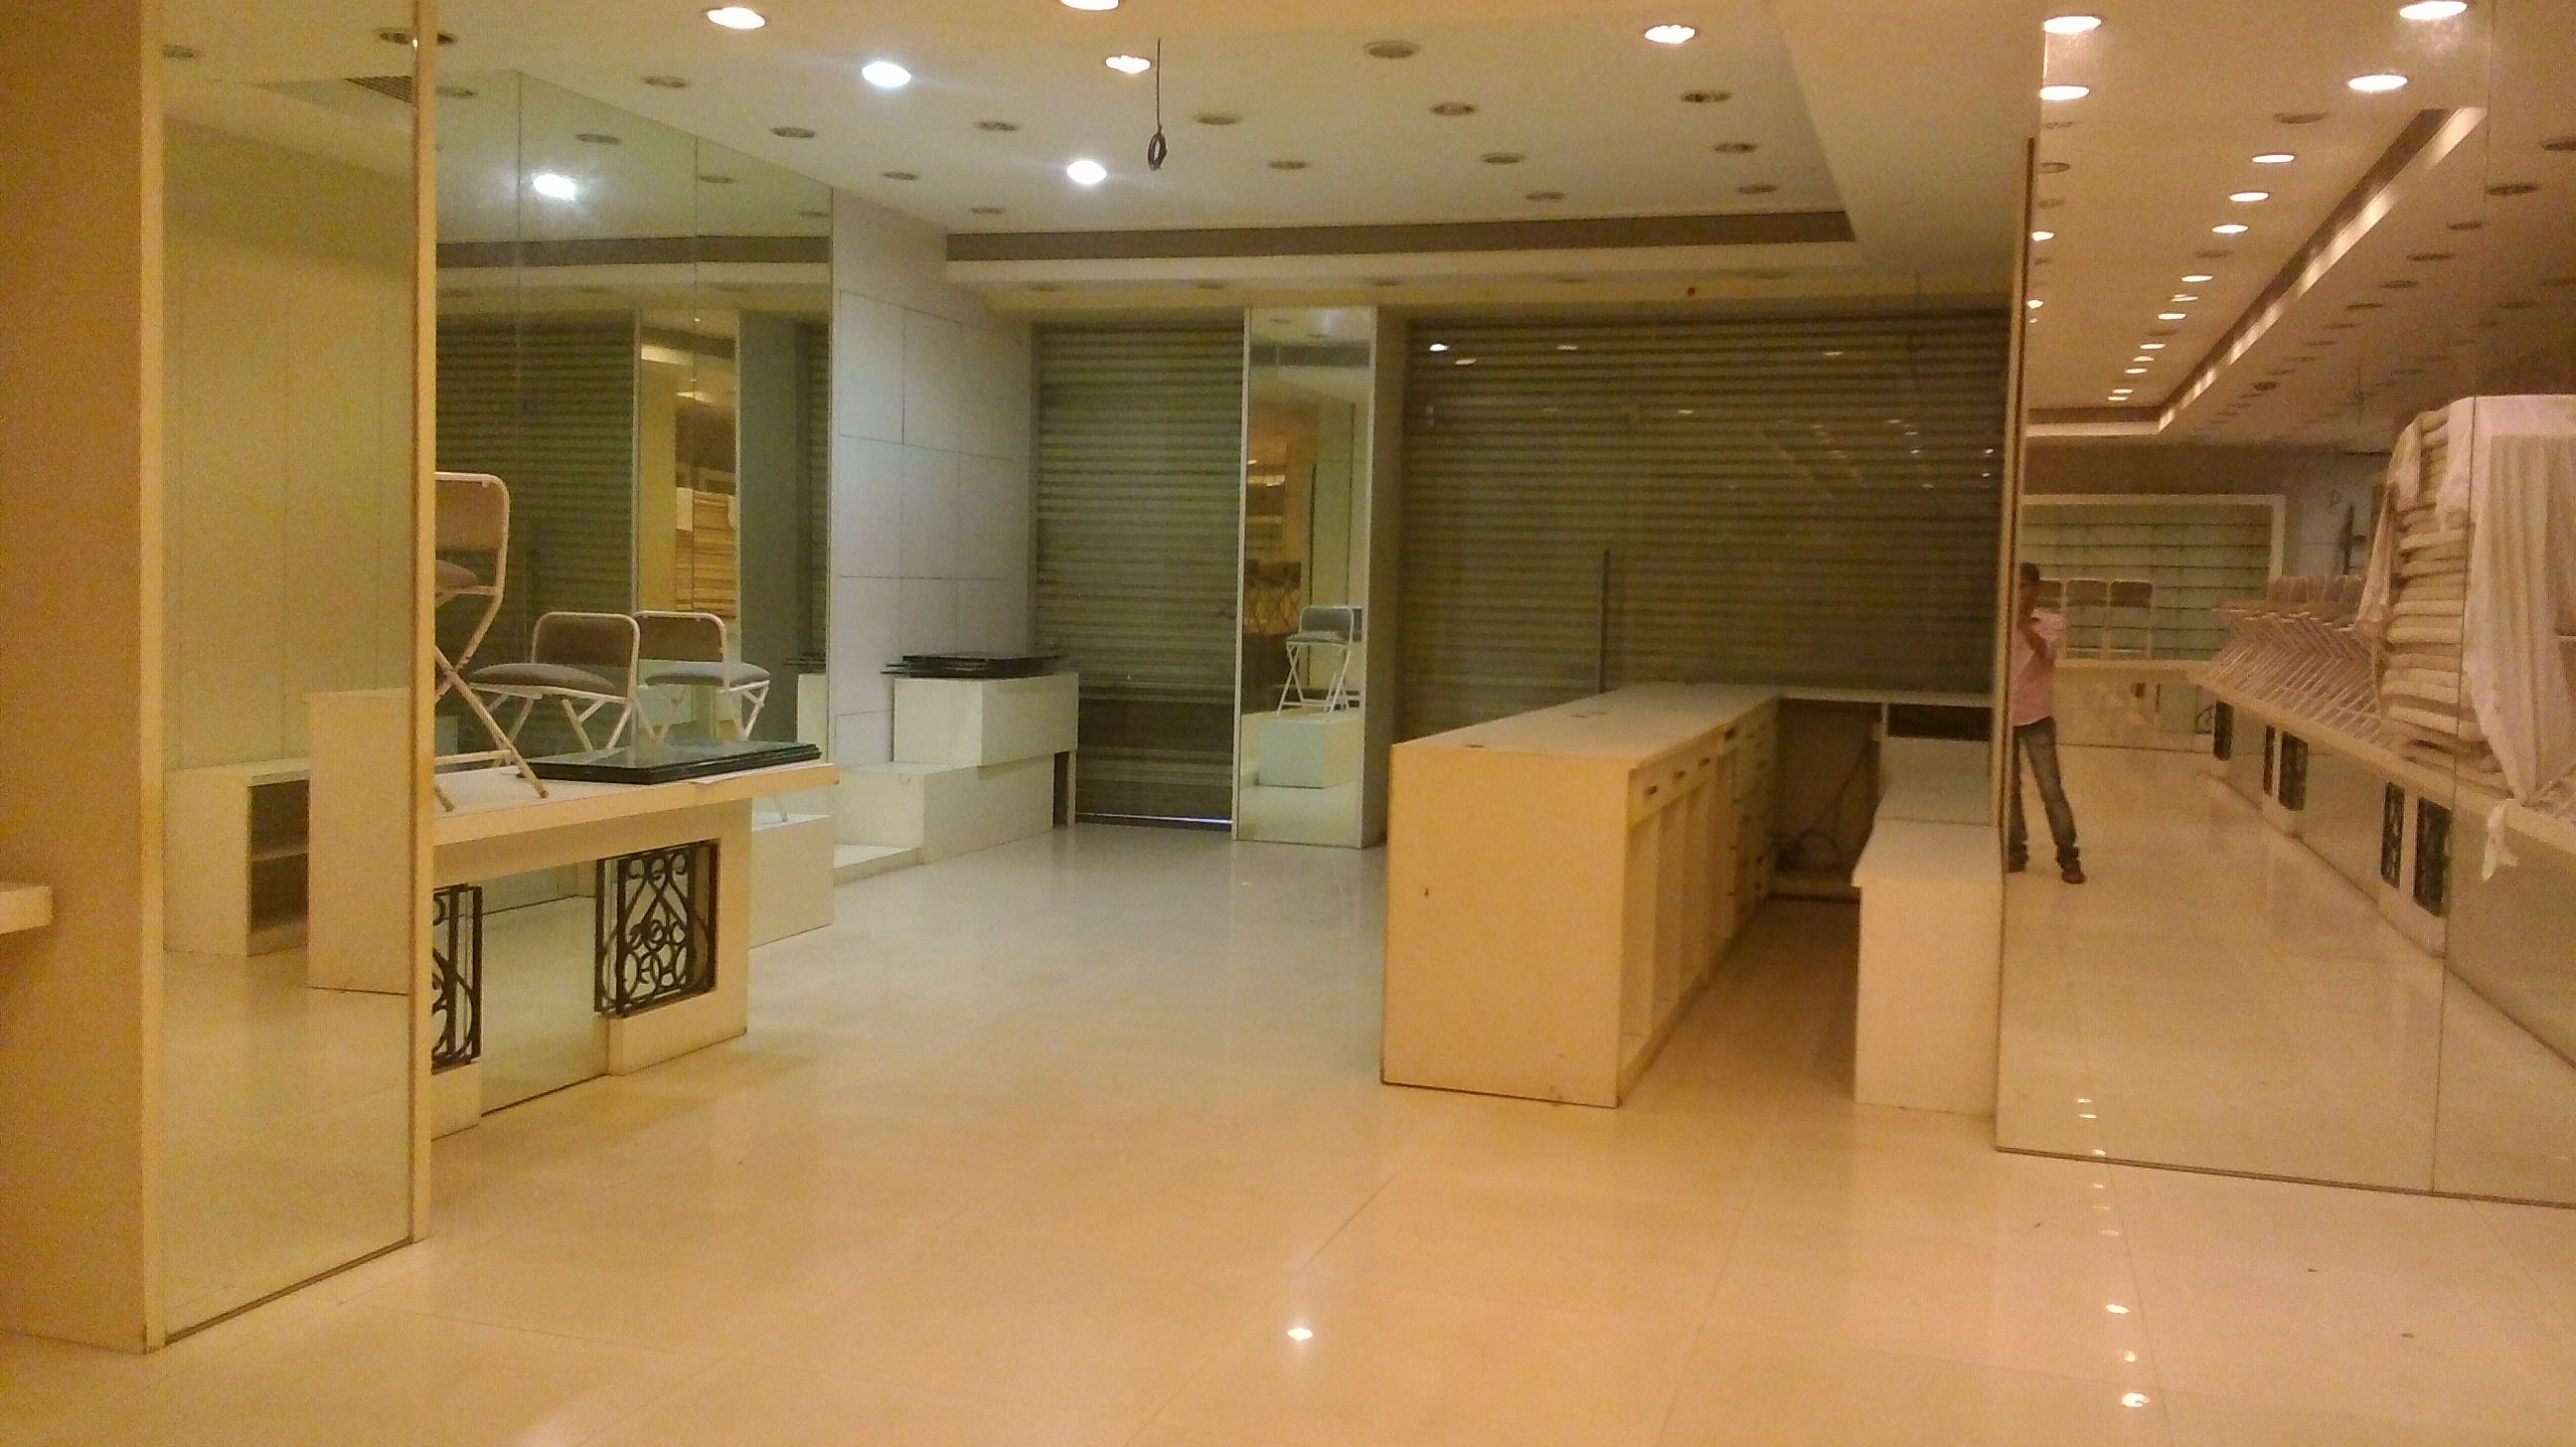 Commercial Shops for Rent in Prabhat Plaza,Opp.M H High School, Shivaji Path. Near Kalyan Jewelers, Thane-West, Mumbai